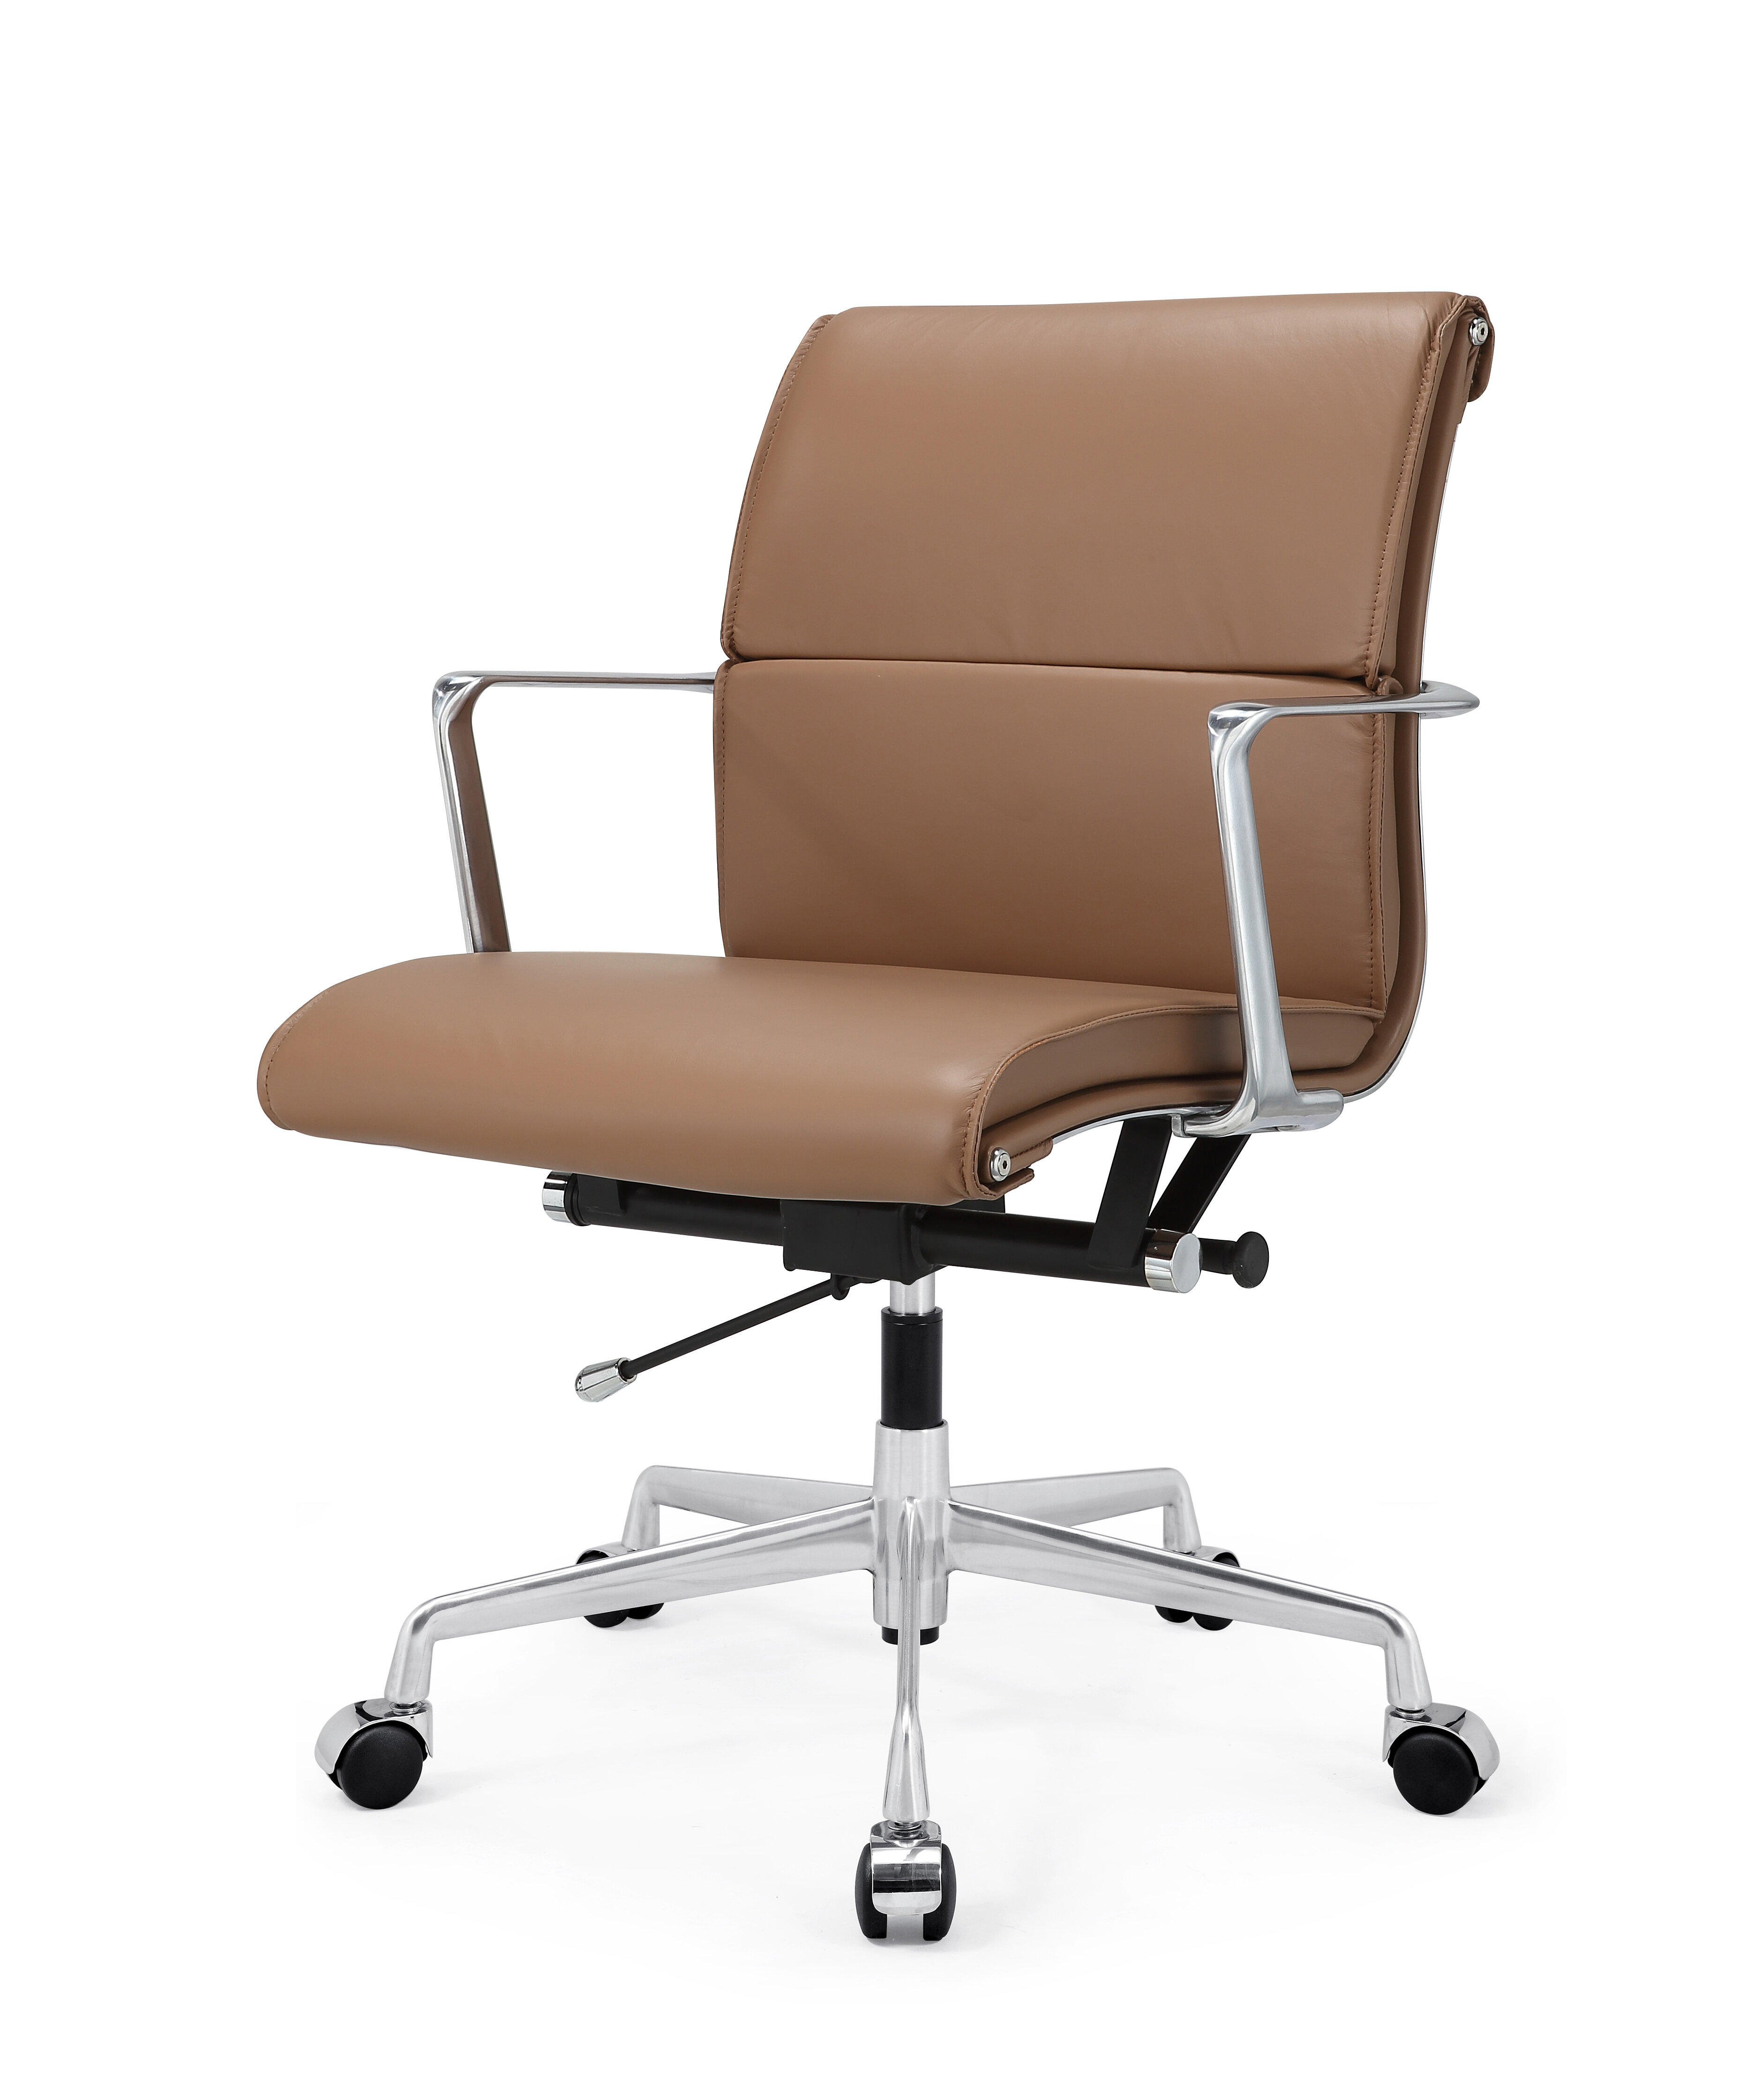 Delicieux Tan Leather Desk Chair | Wayfair